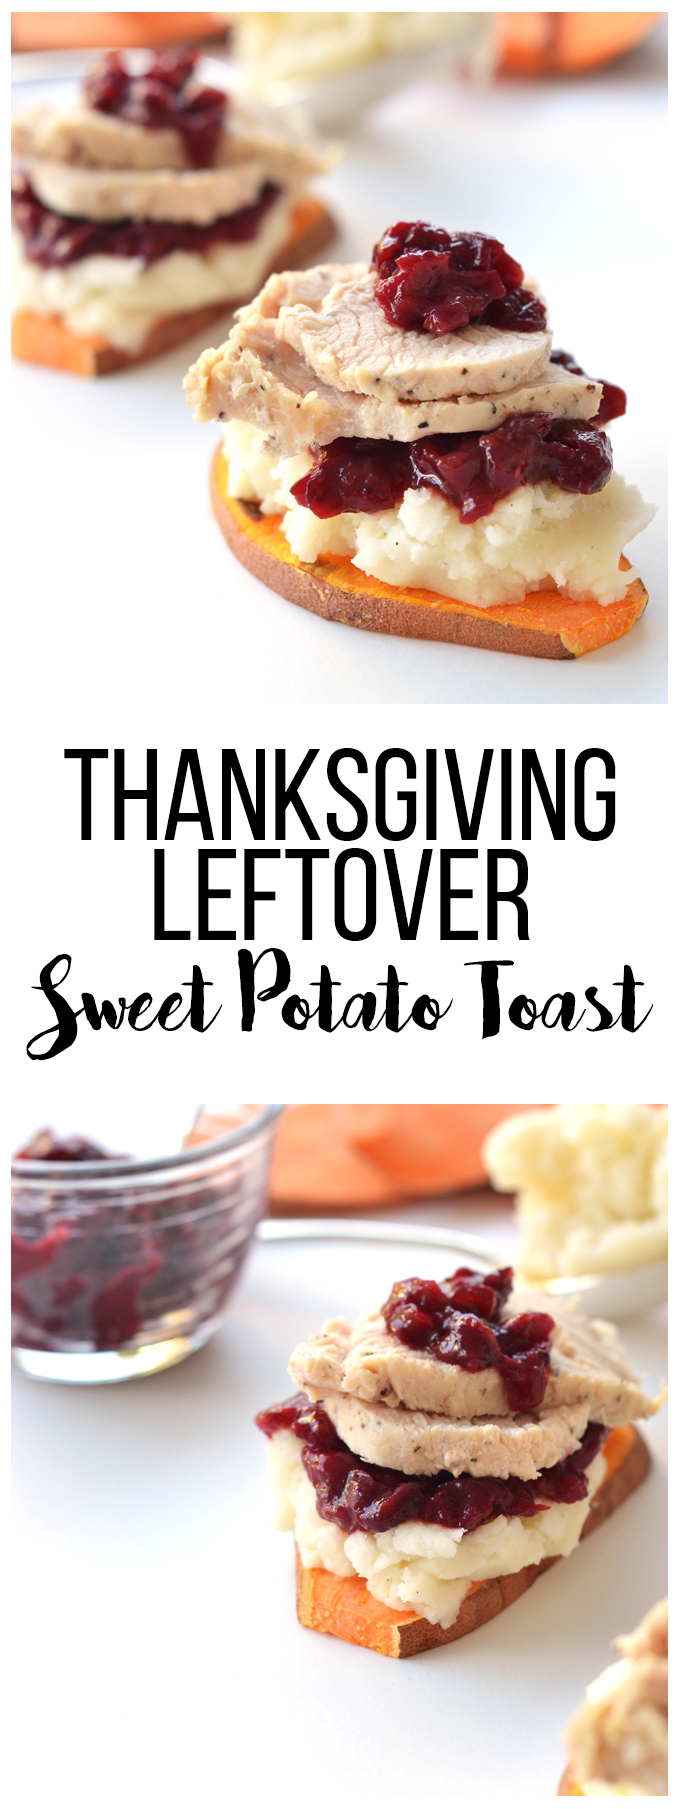 This Thanksgiving Leftover Sweet Potato Toast is a great way to use up your thanksgiving leftovers in a healthy way!